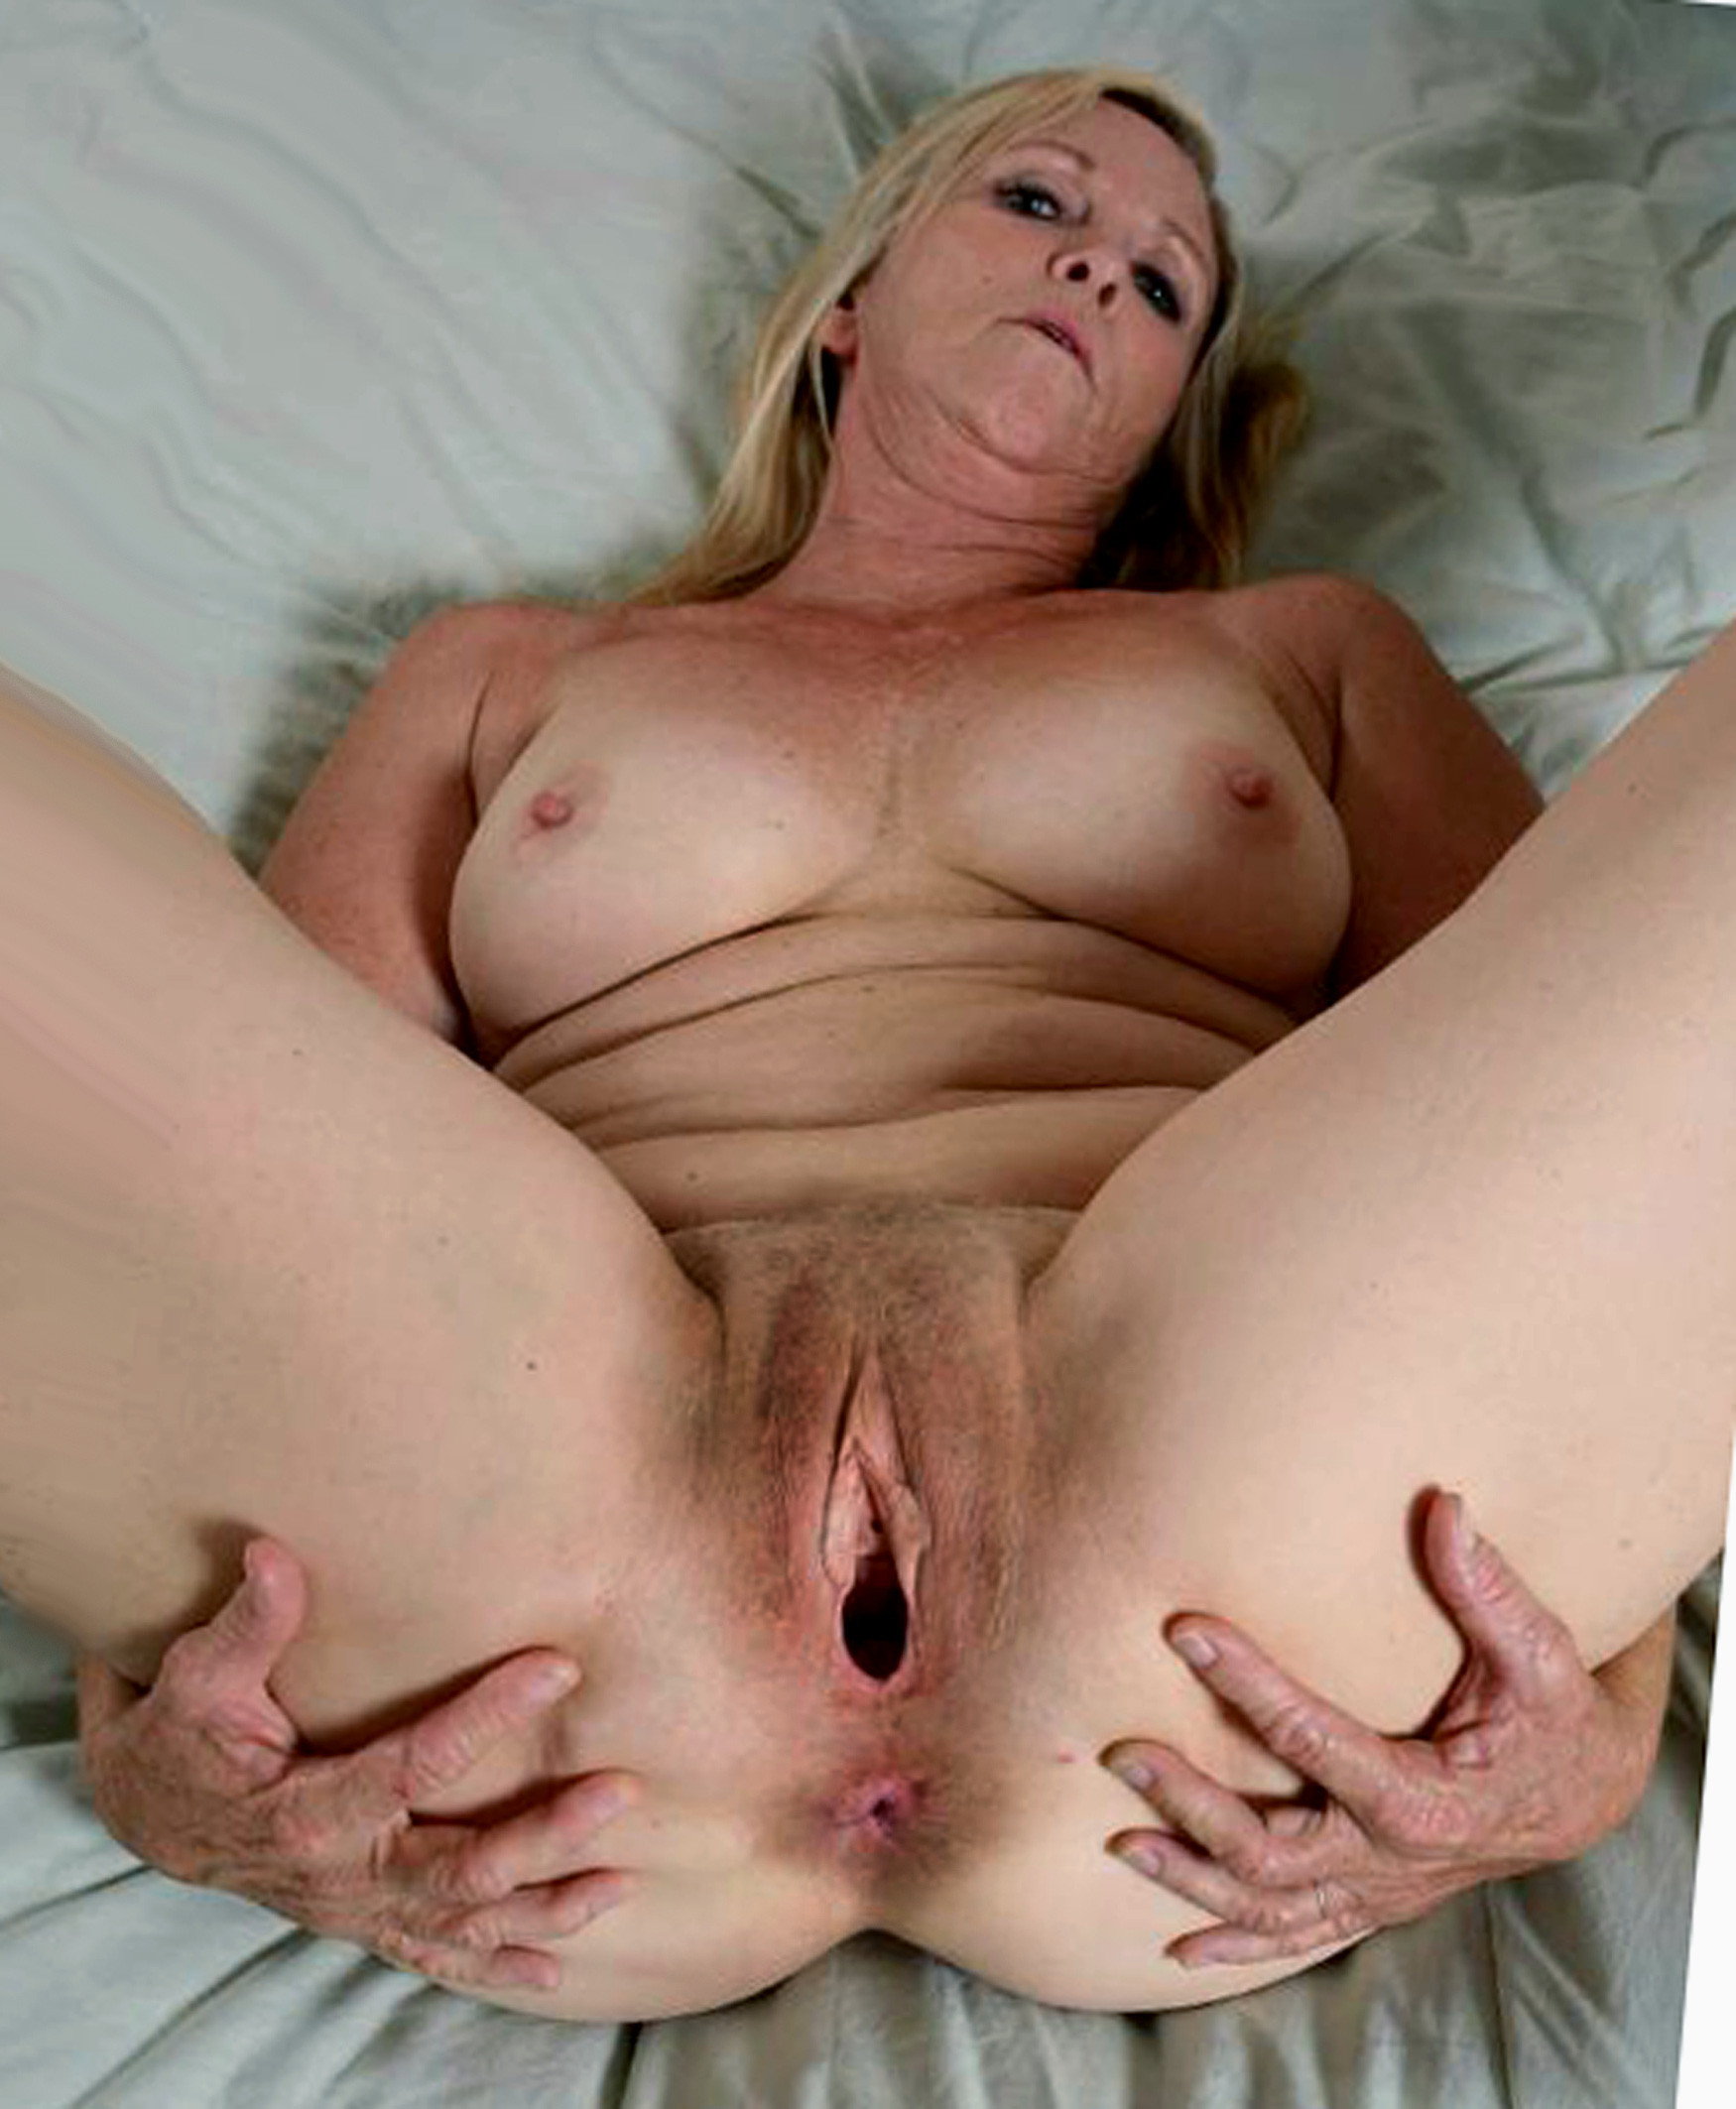 Old woman nude pussy open photo